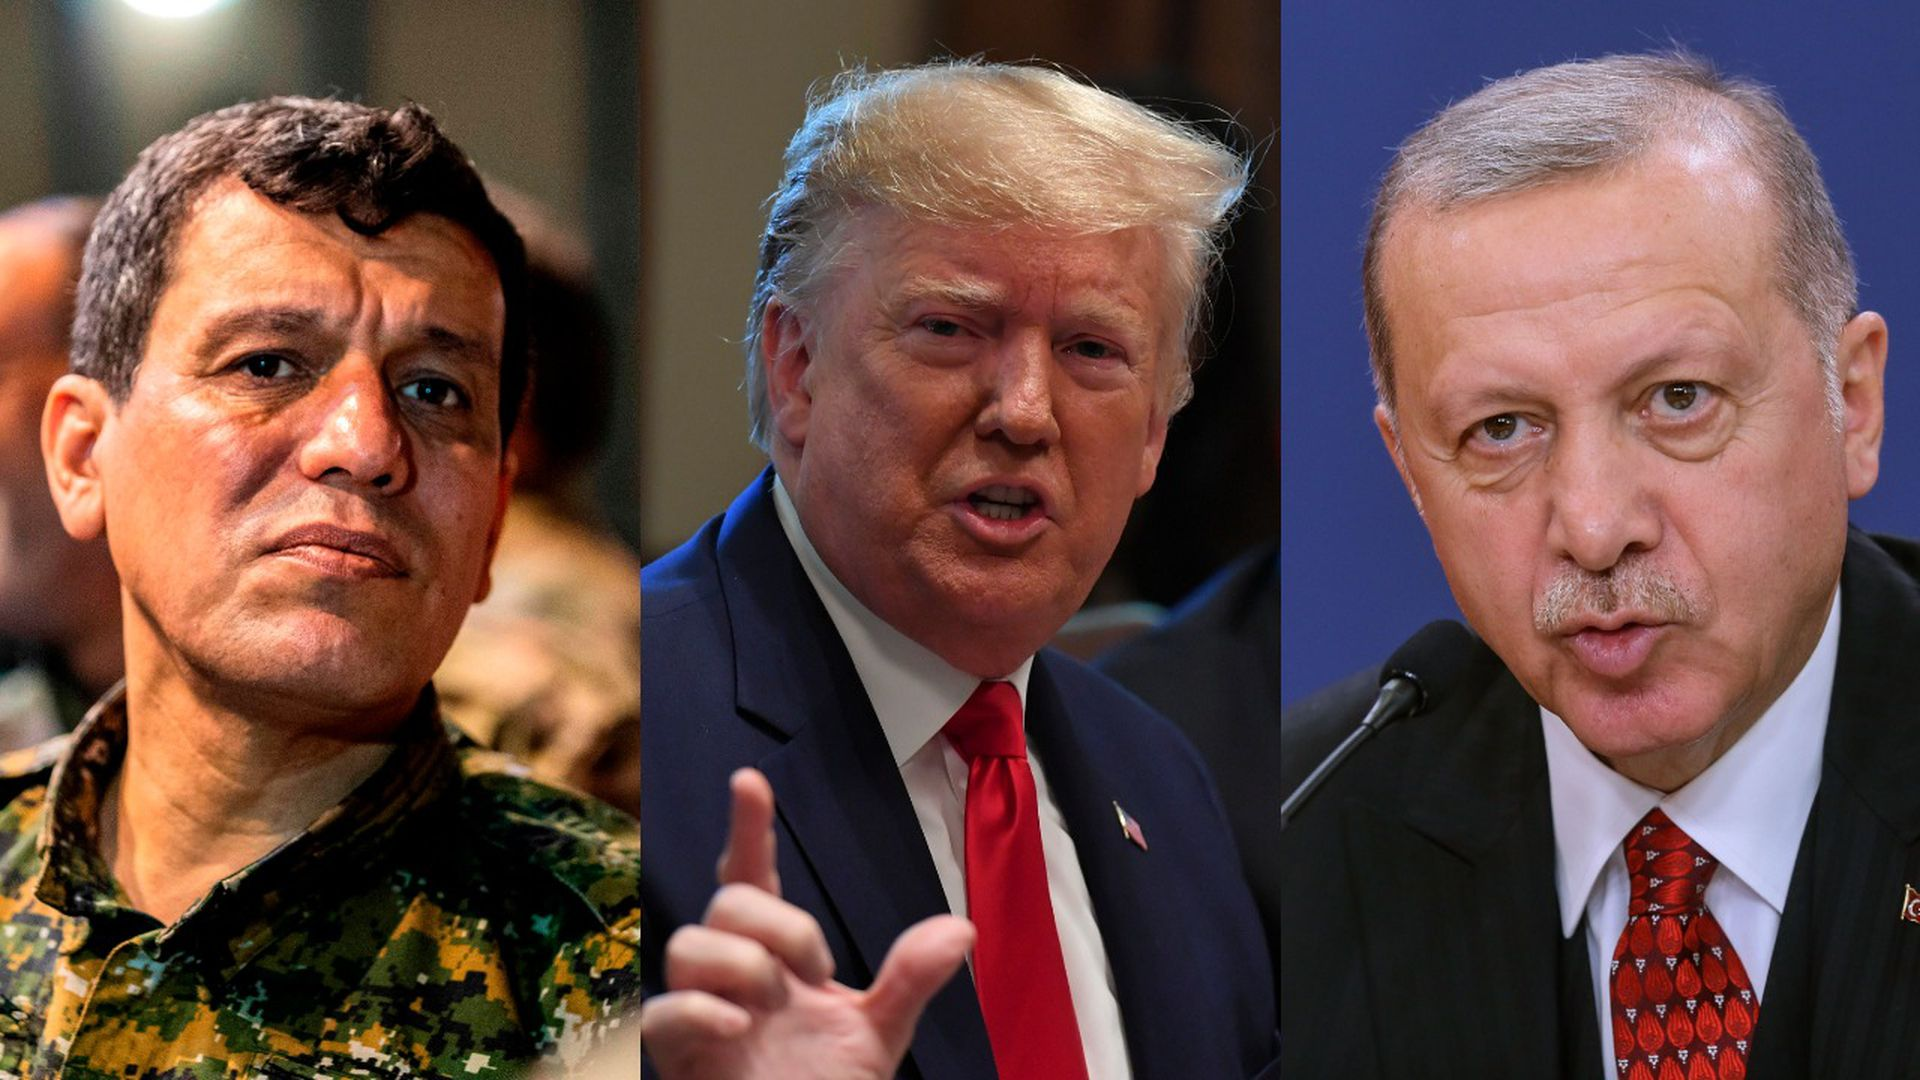 Mazloum Kobani, Trump and Erdogan